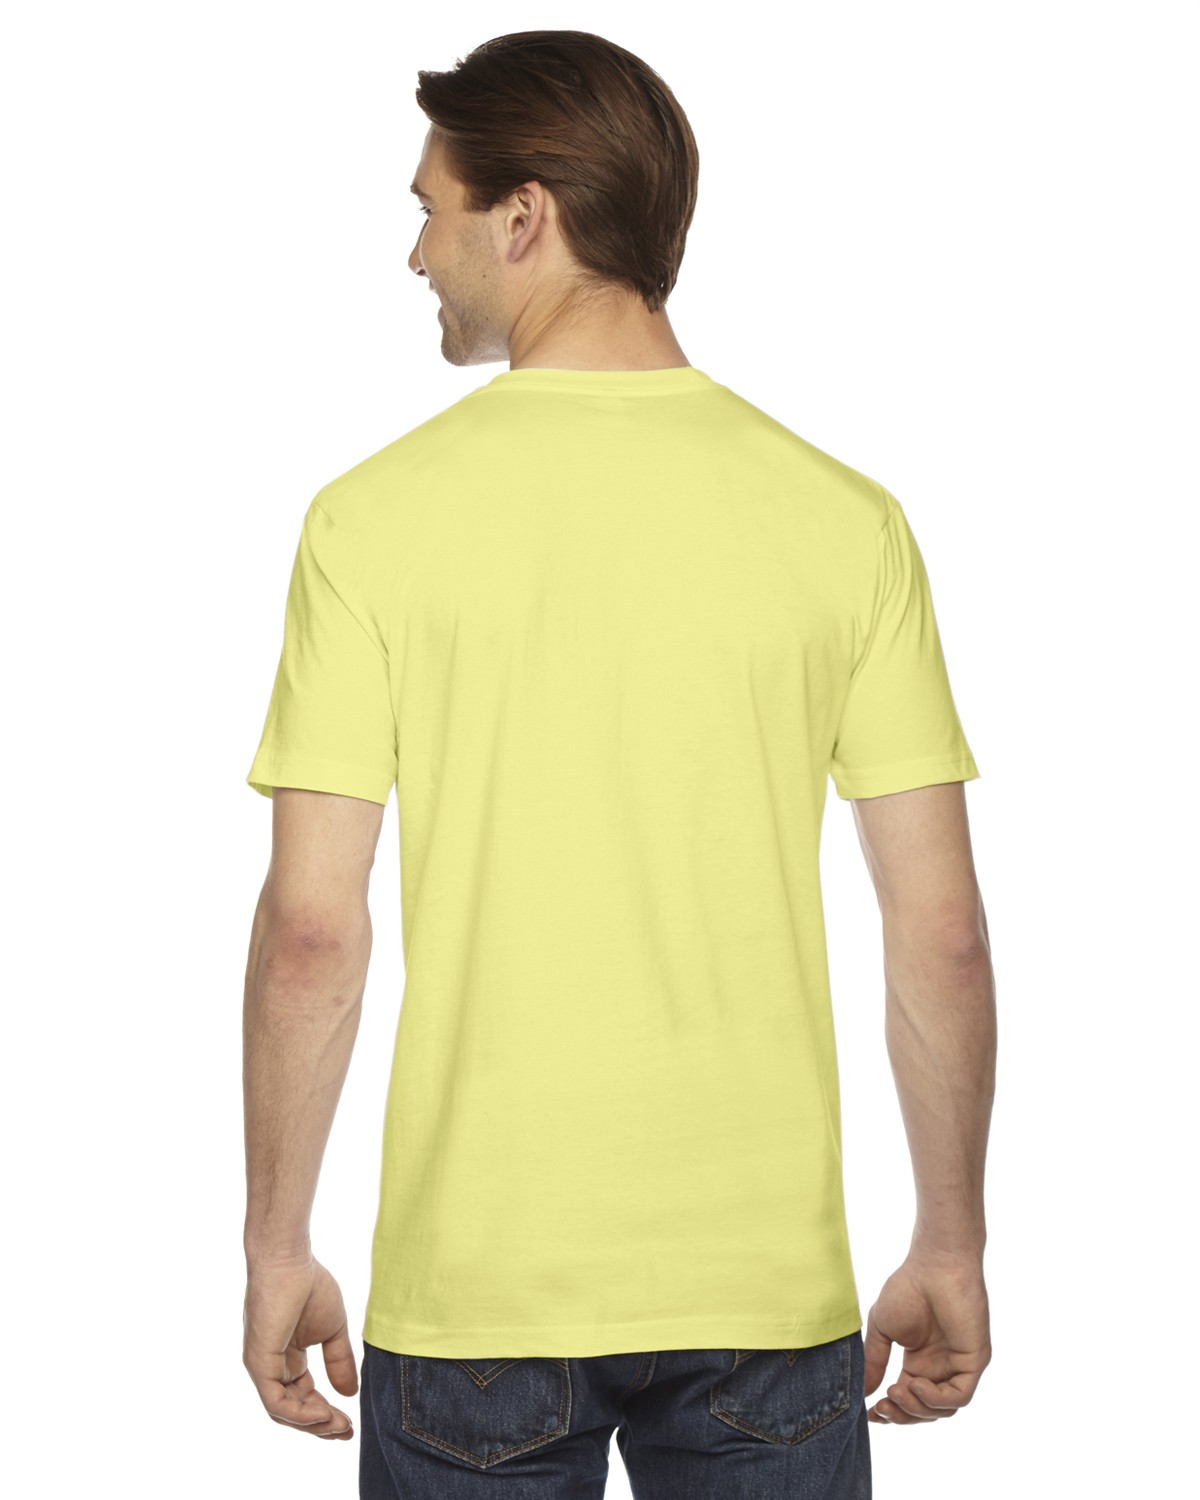 2001W American Apparel LEMON